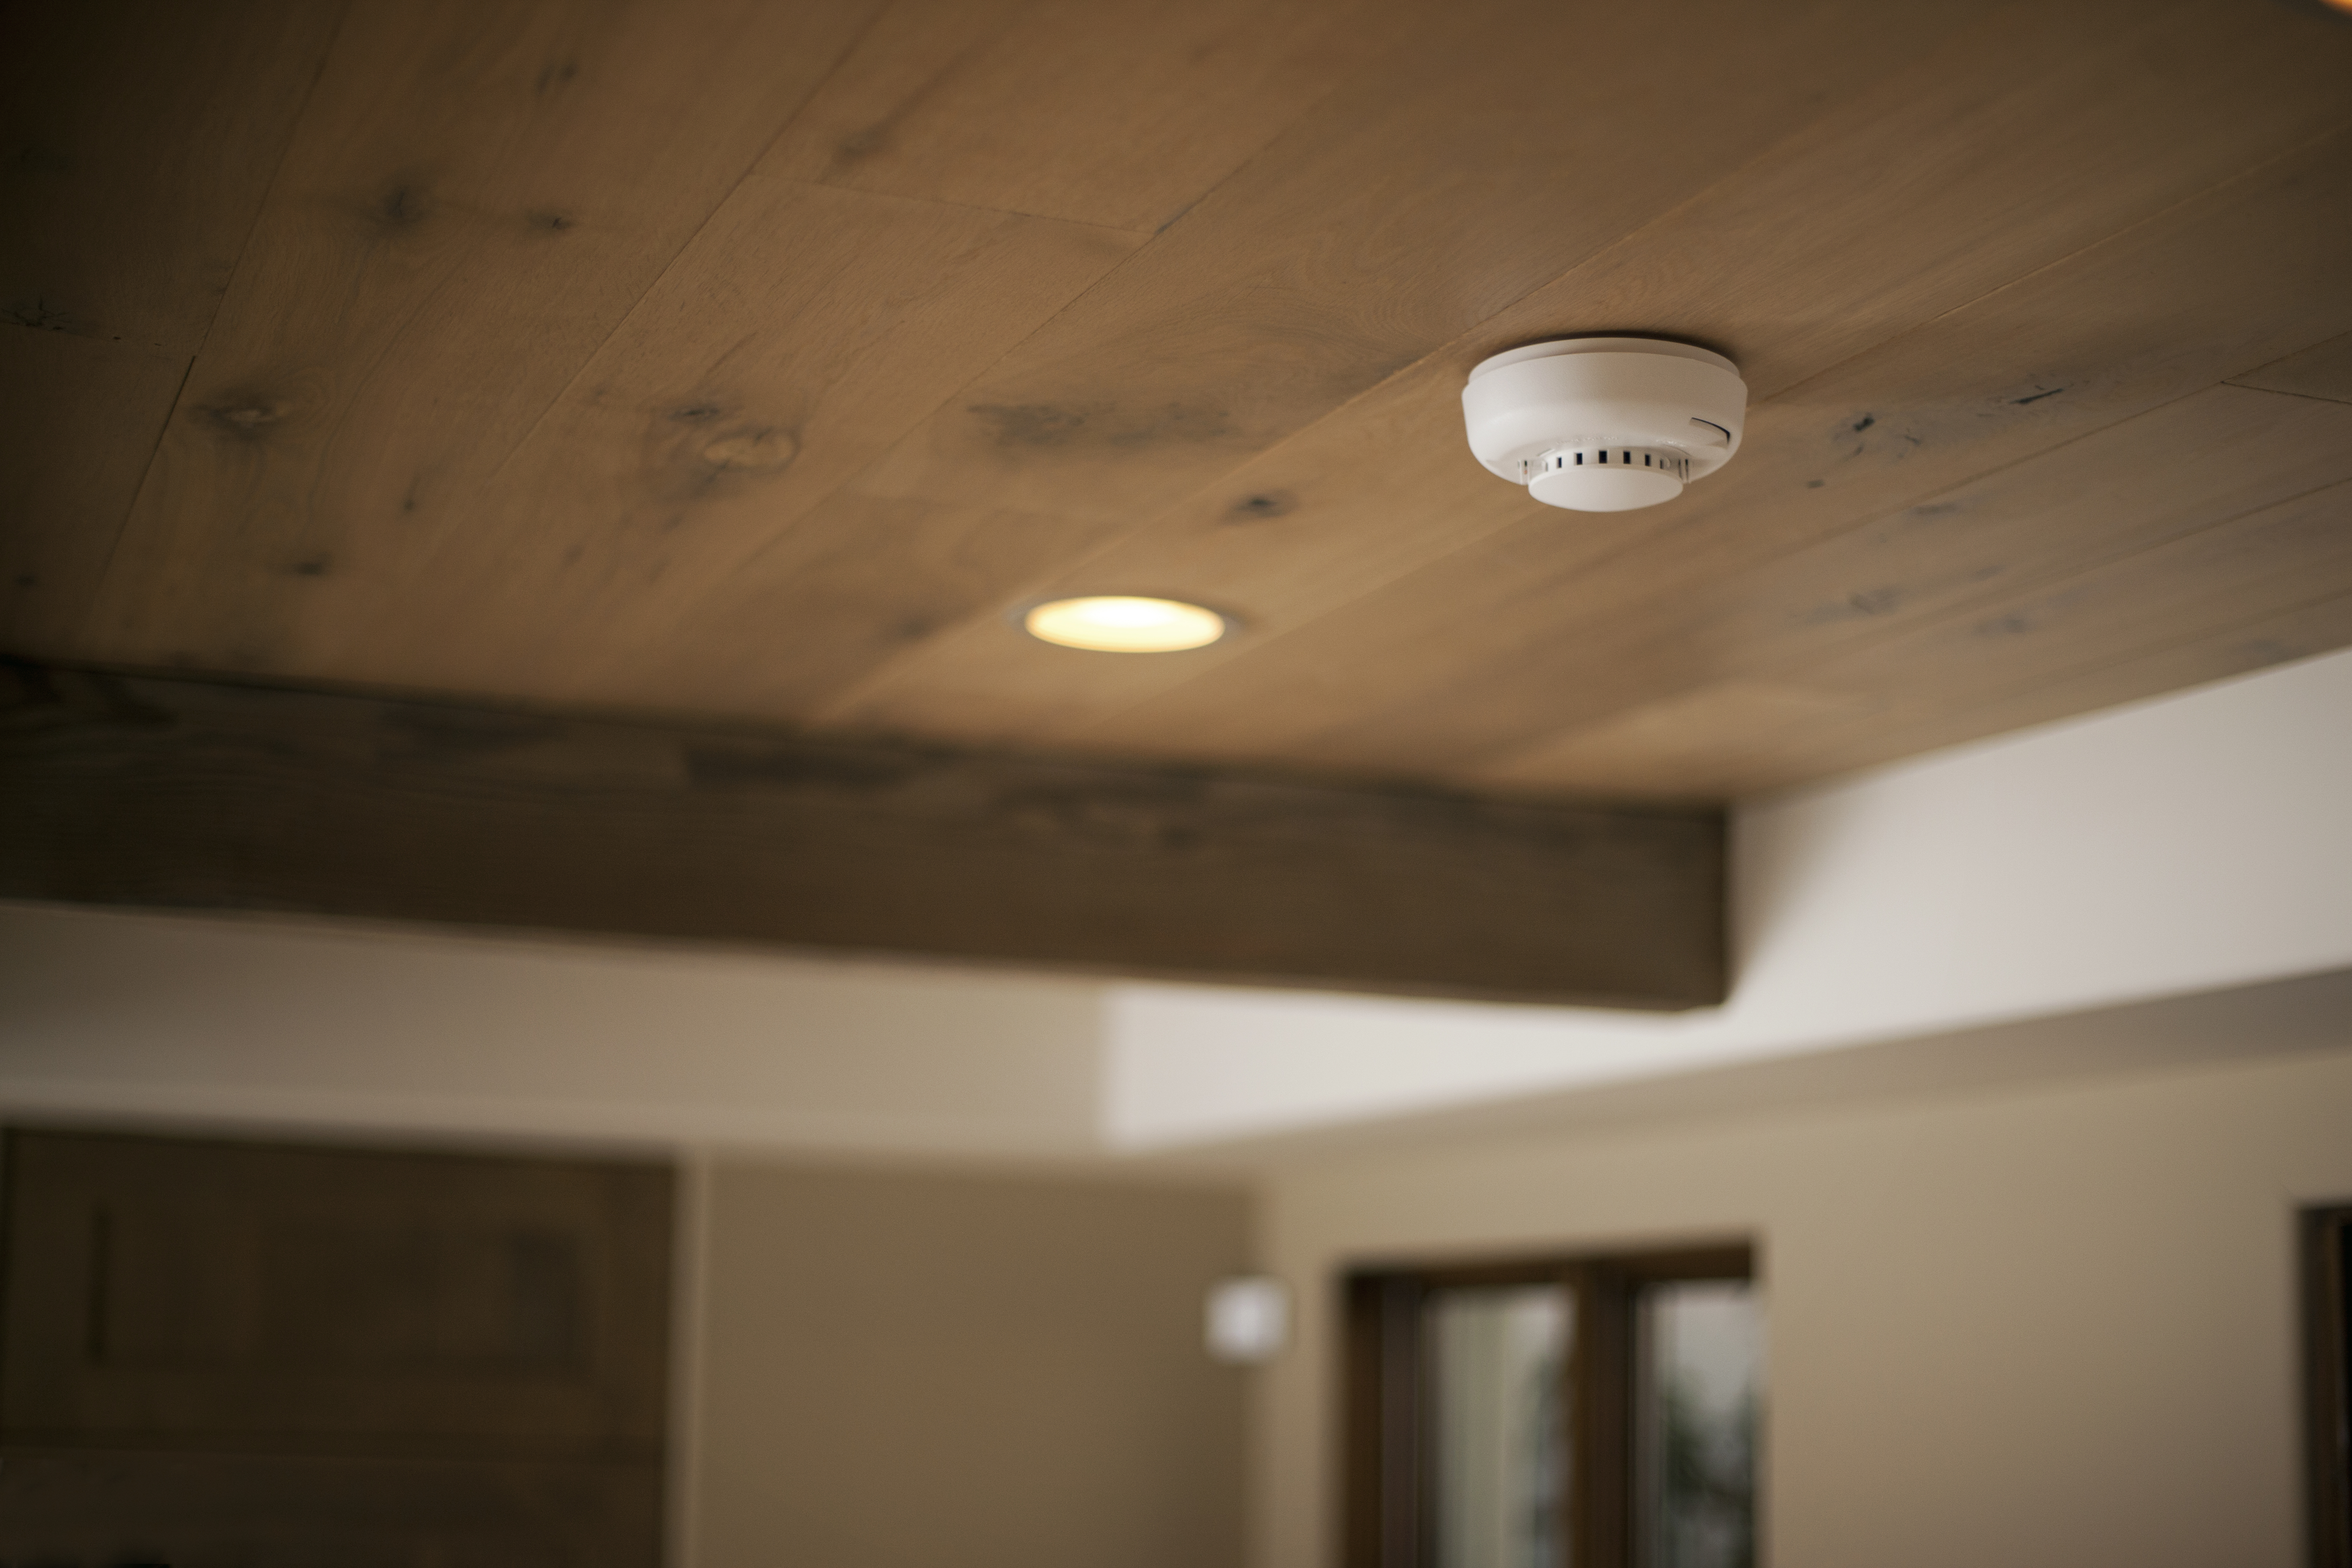 a smoke detector that can take the heat